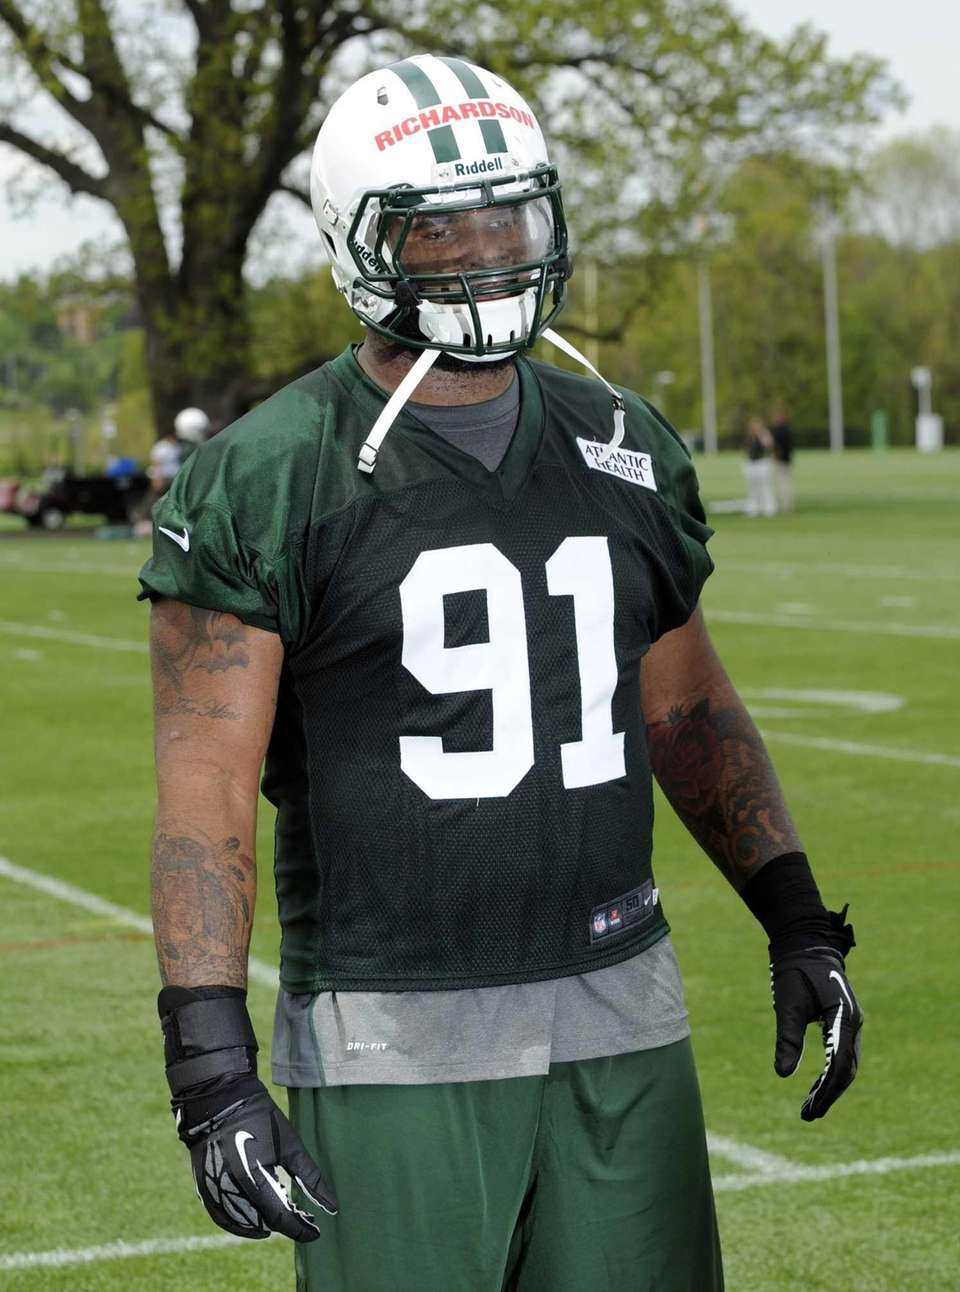 New York Jets defensive tackle Sheldon Richardson, a